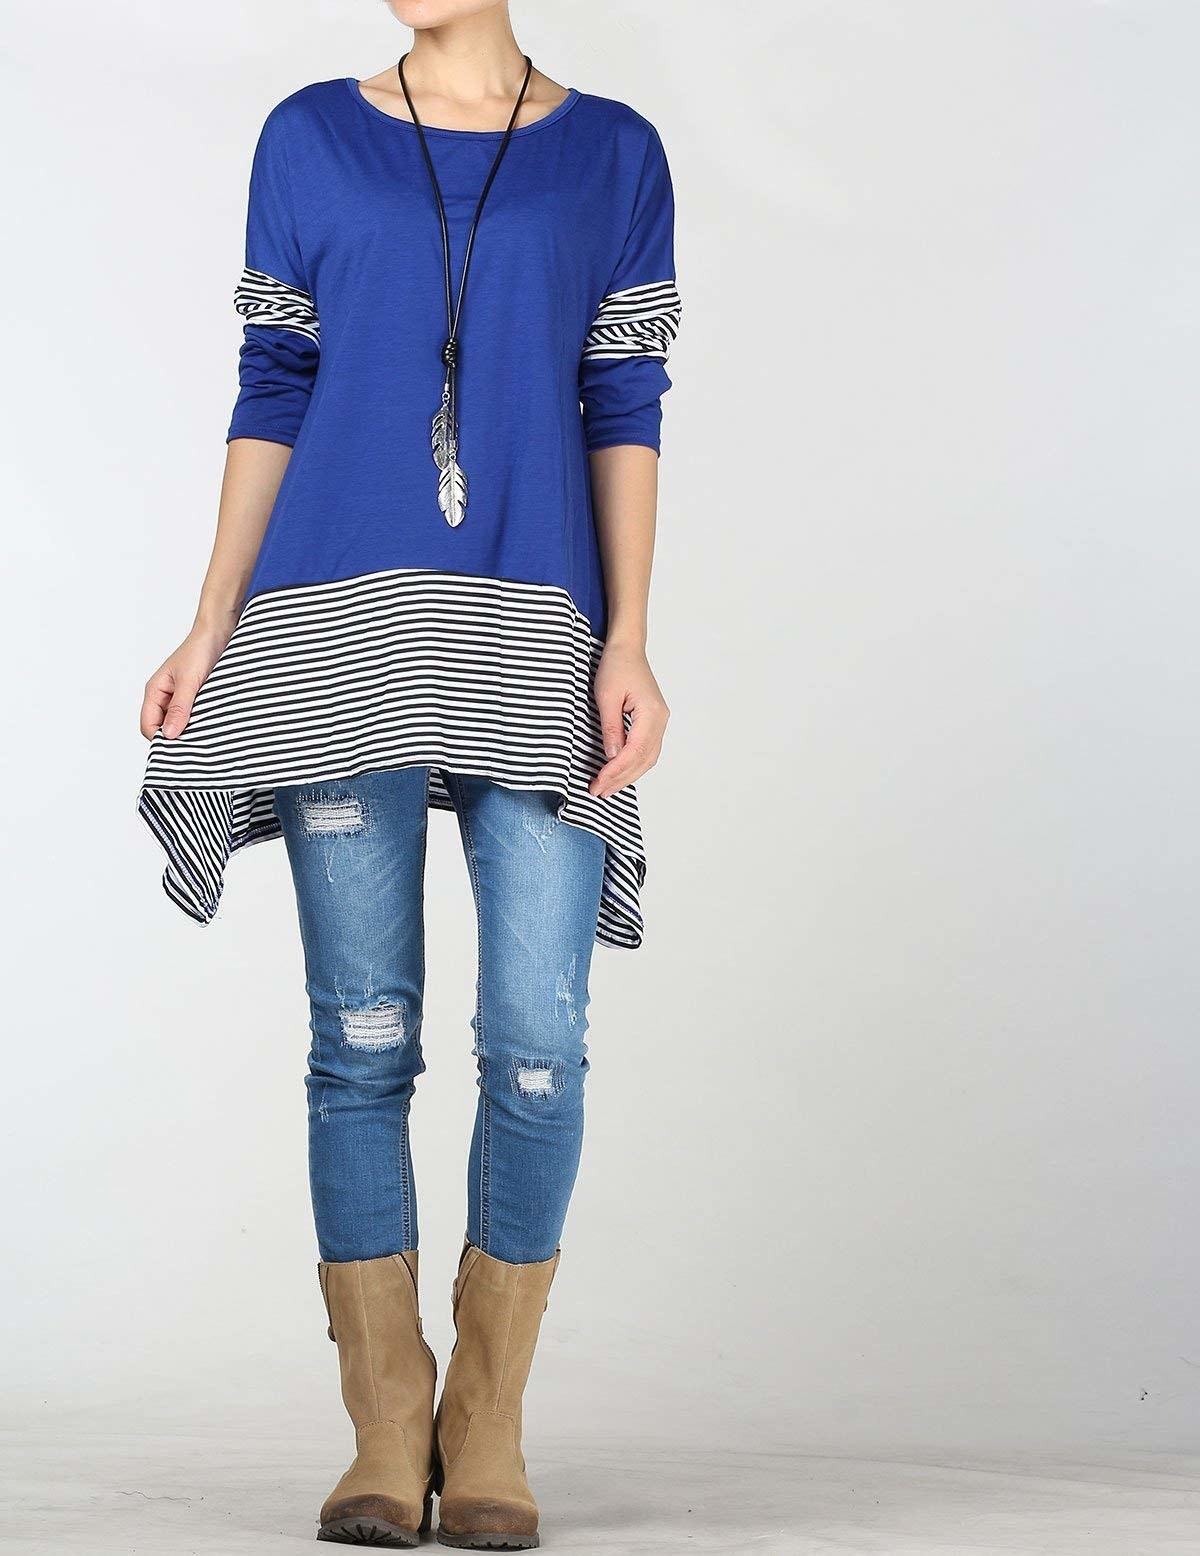 Model wearing the long sleeve top in blue with black and white striped details on hem and sleeves